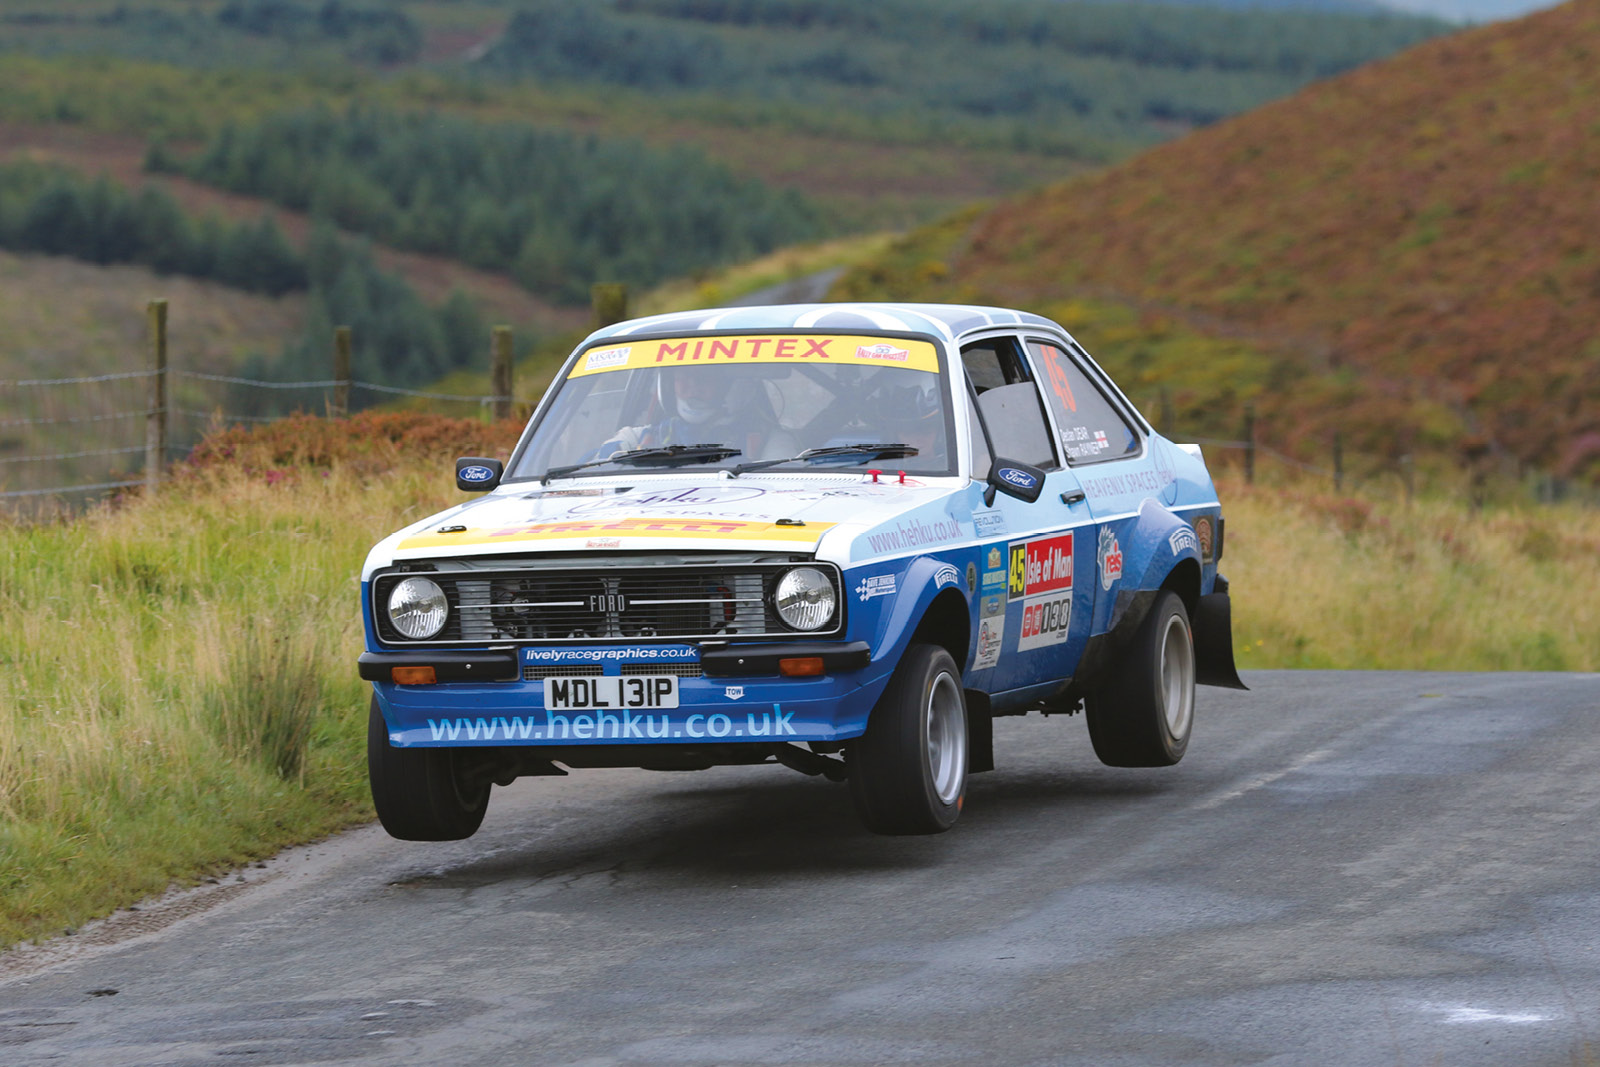 Rallying is mourning Shawn Rayner and Steve Dear